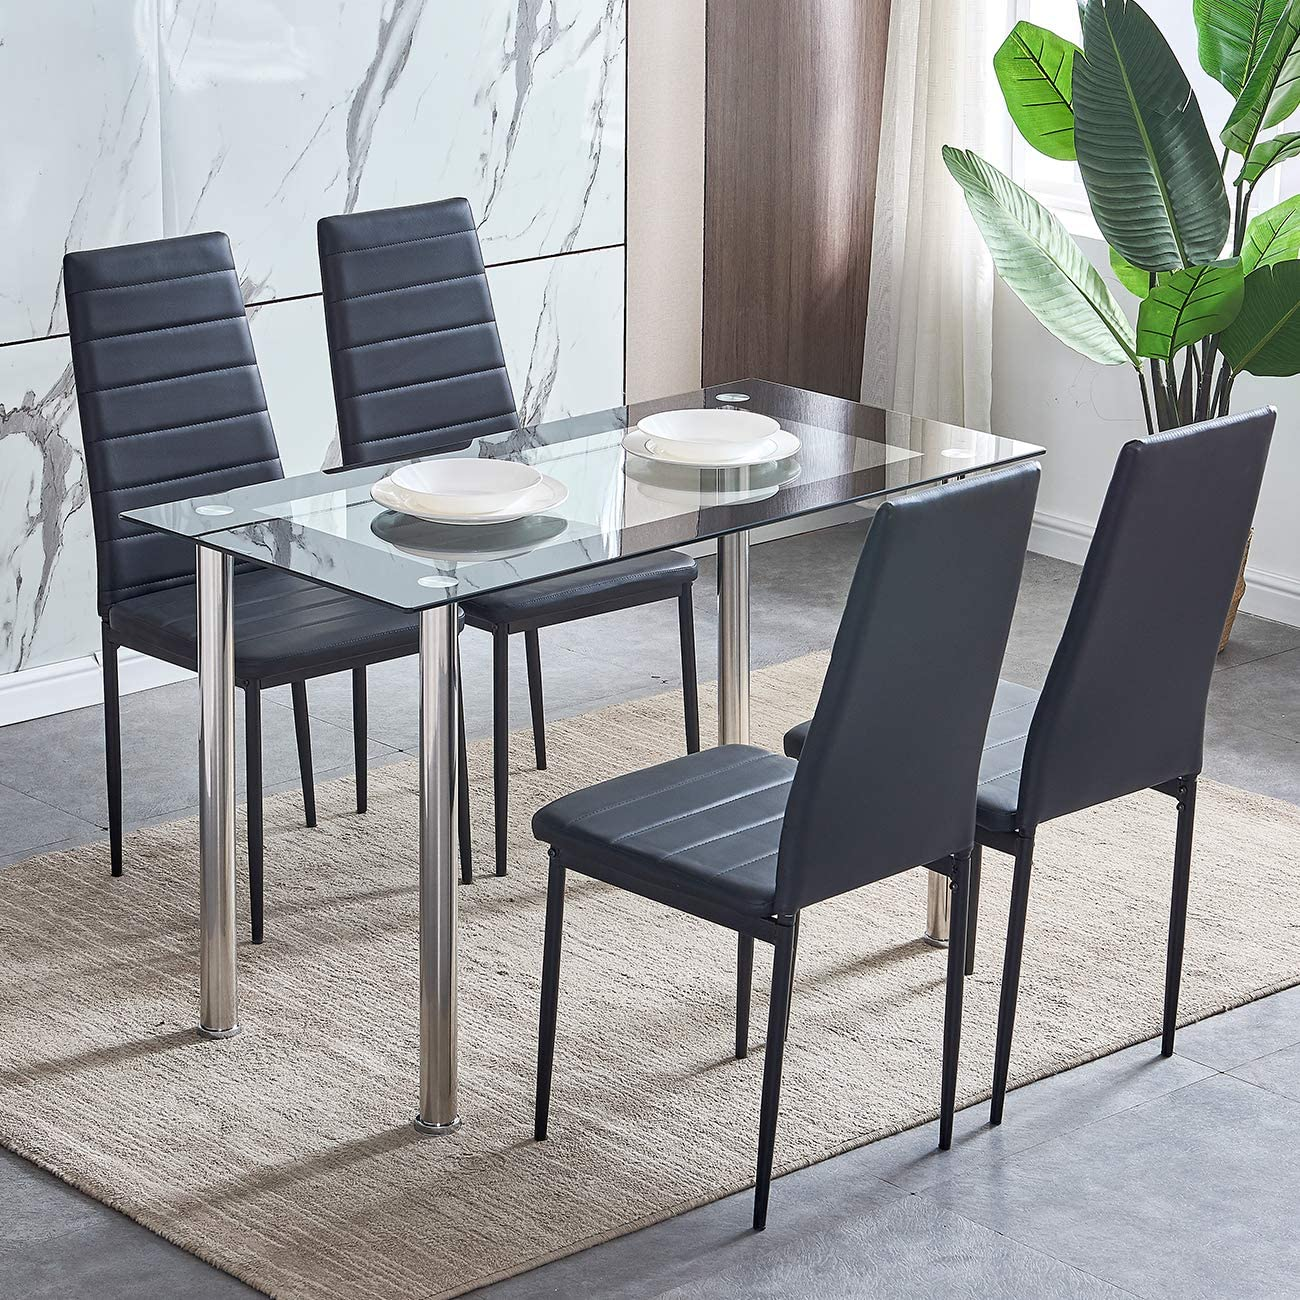 Beliwin Glass Dining Table Rectangular Furniture With Chrome Legs For Kitchen Dining Room Furniture Dining Room Furniture